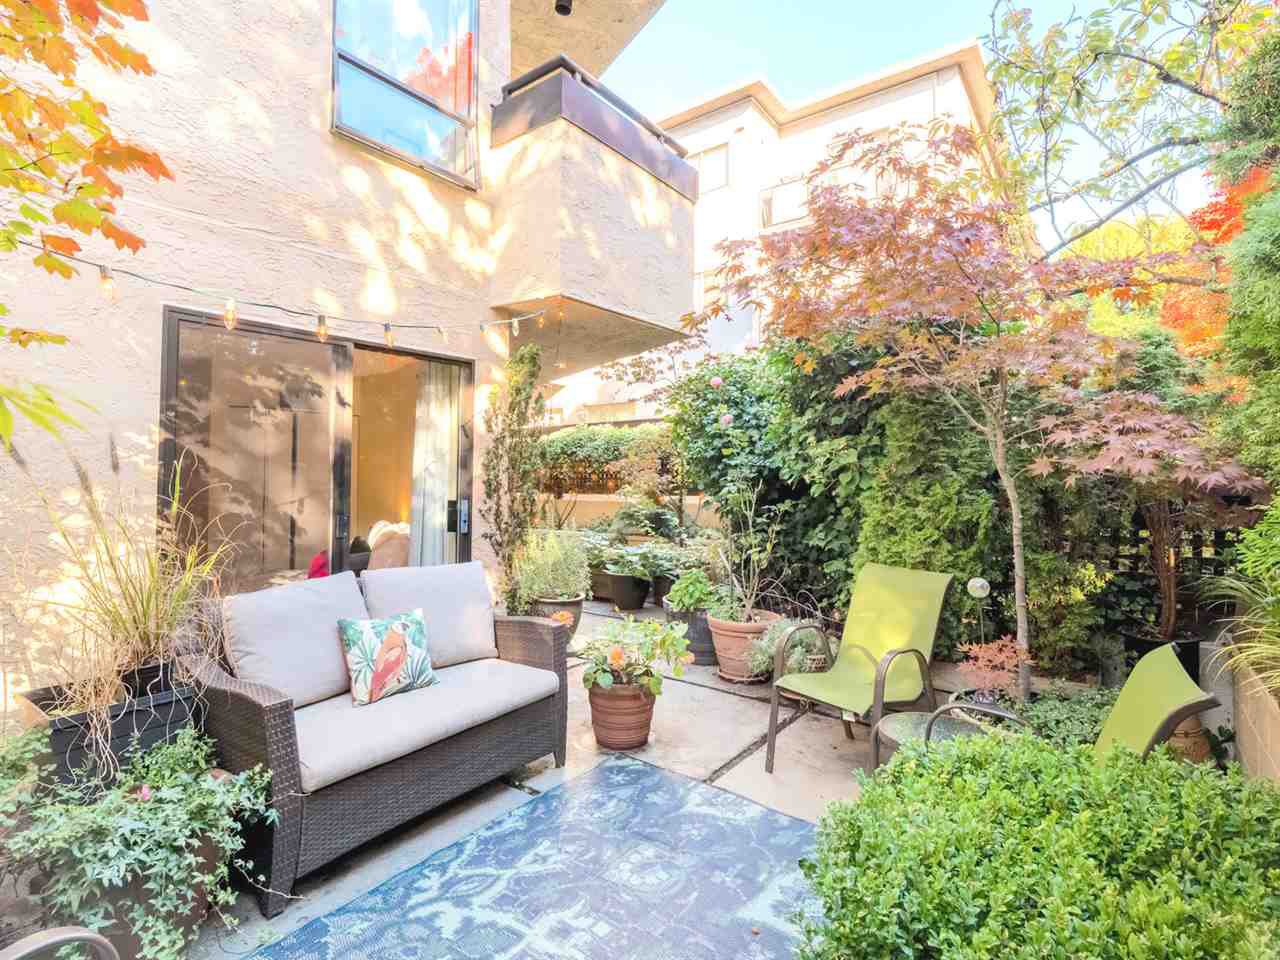 Photo 12: Photos: 101 8645 OSLER Street in Vancouver: Marpole Condo for sale (Vancouver West)  : MLS®# R2311470